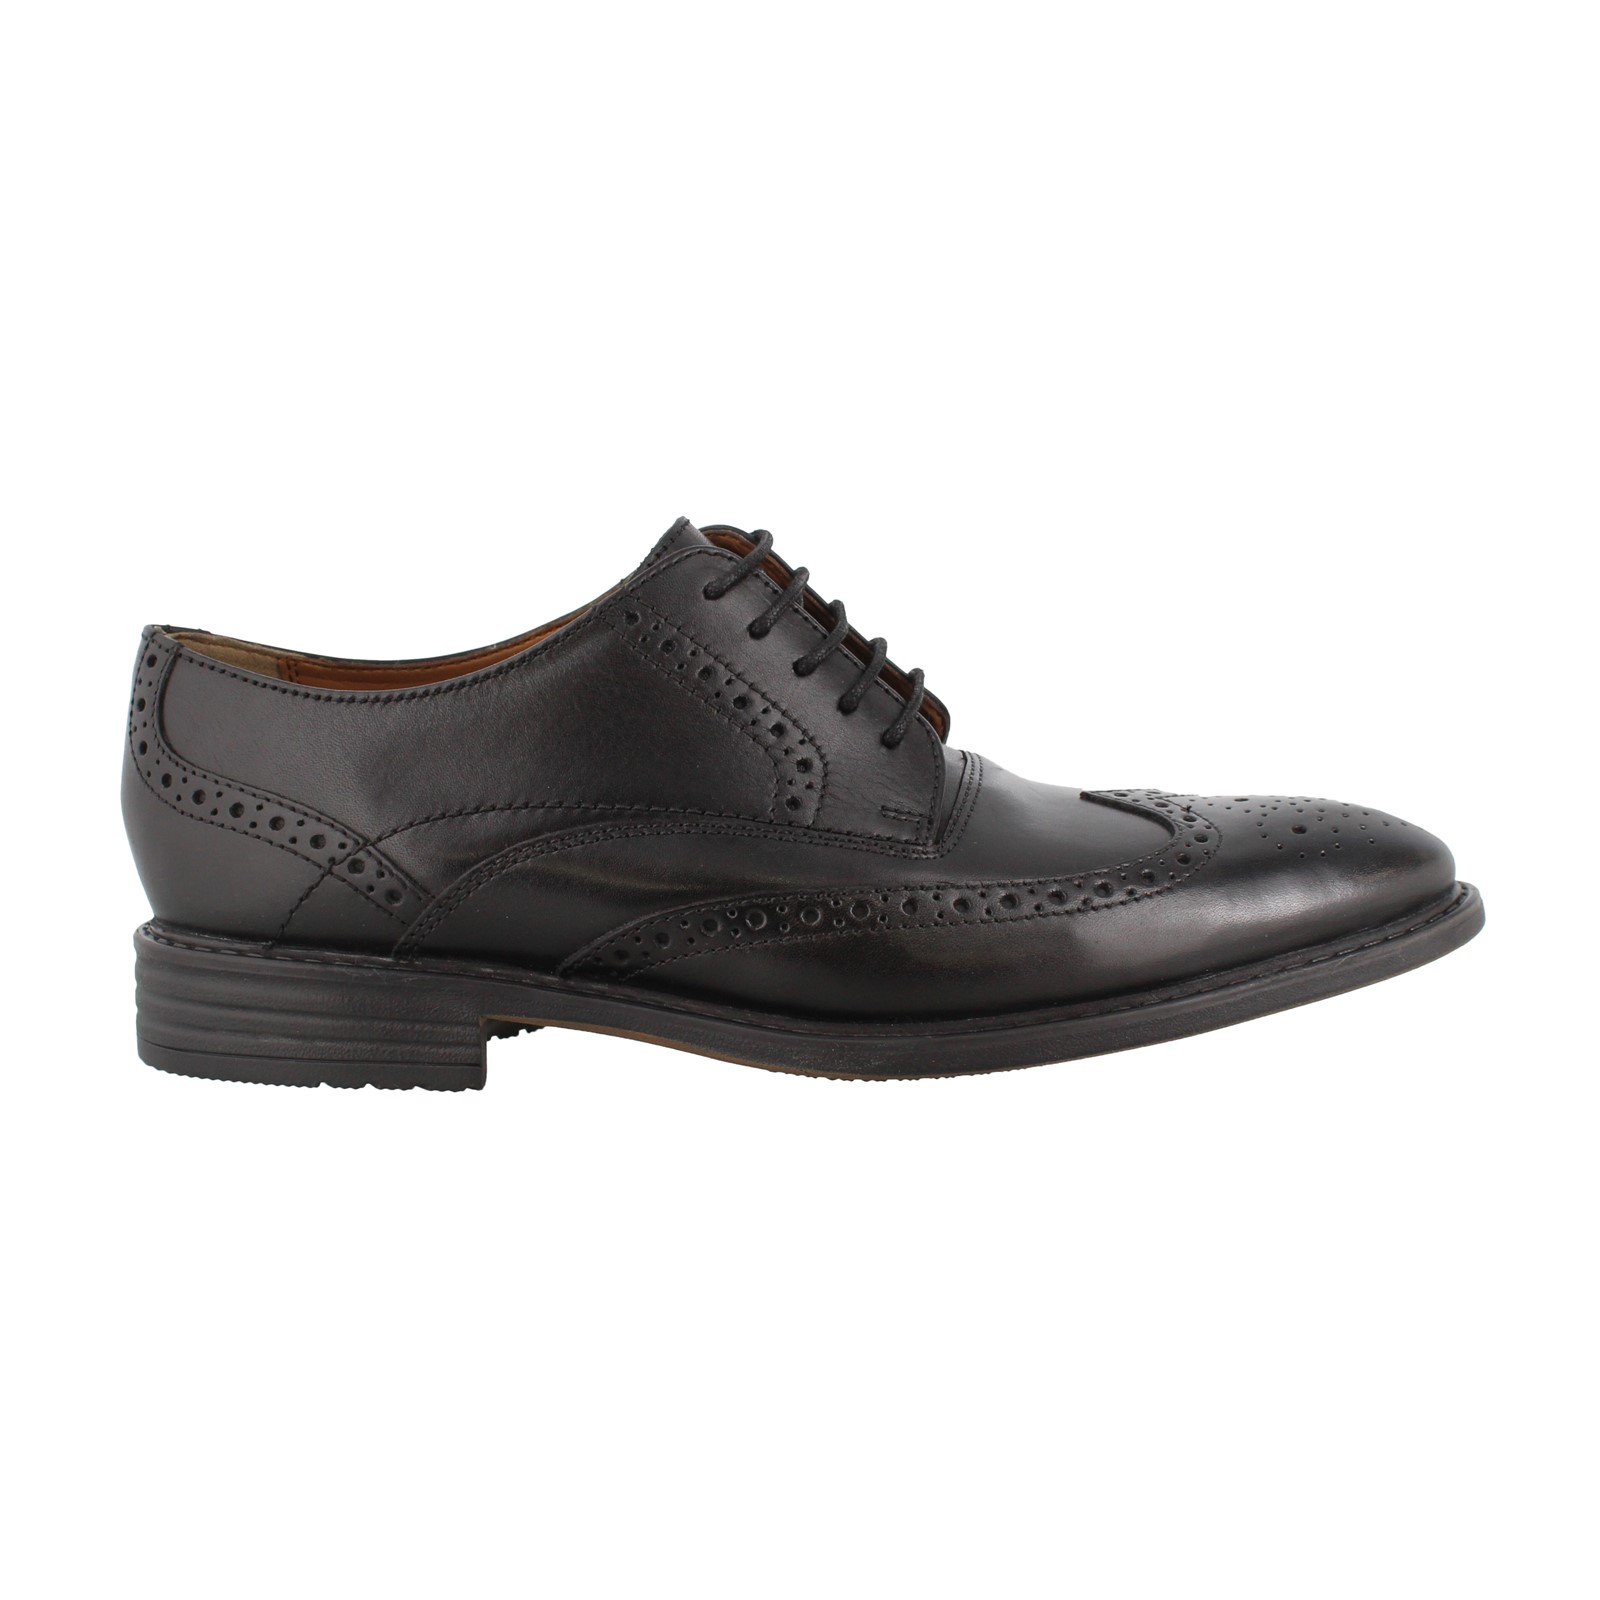 Men's Bostonian, Garavan Edge Lace up Shoes